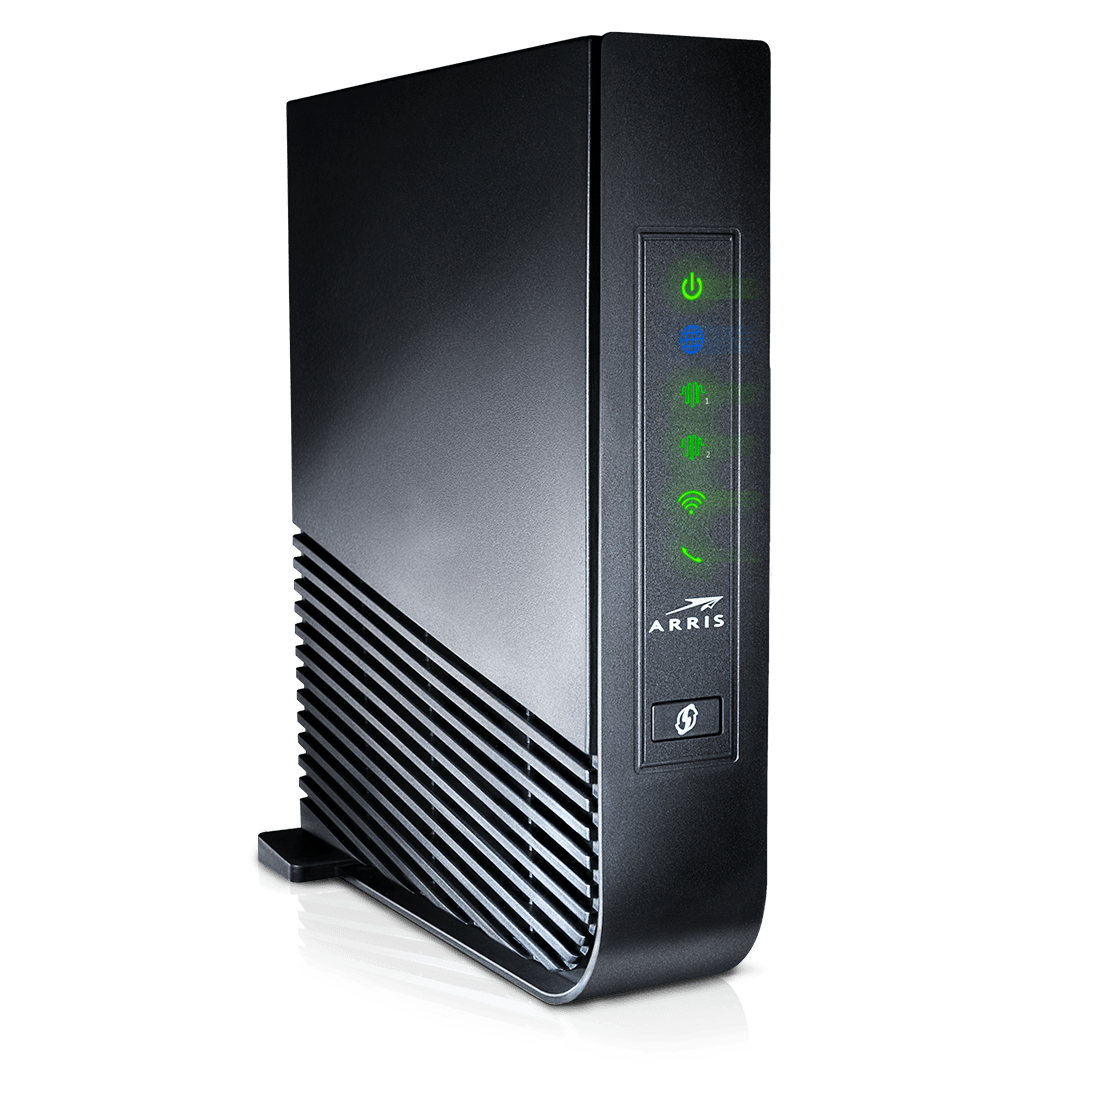 how to change the password on my at&t router